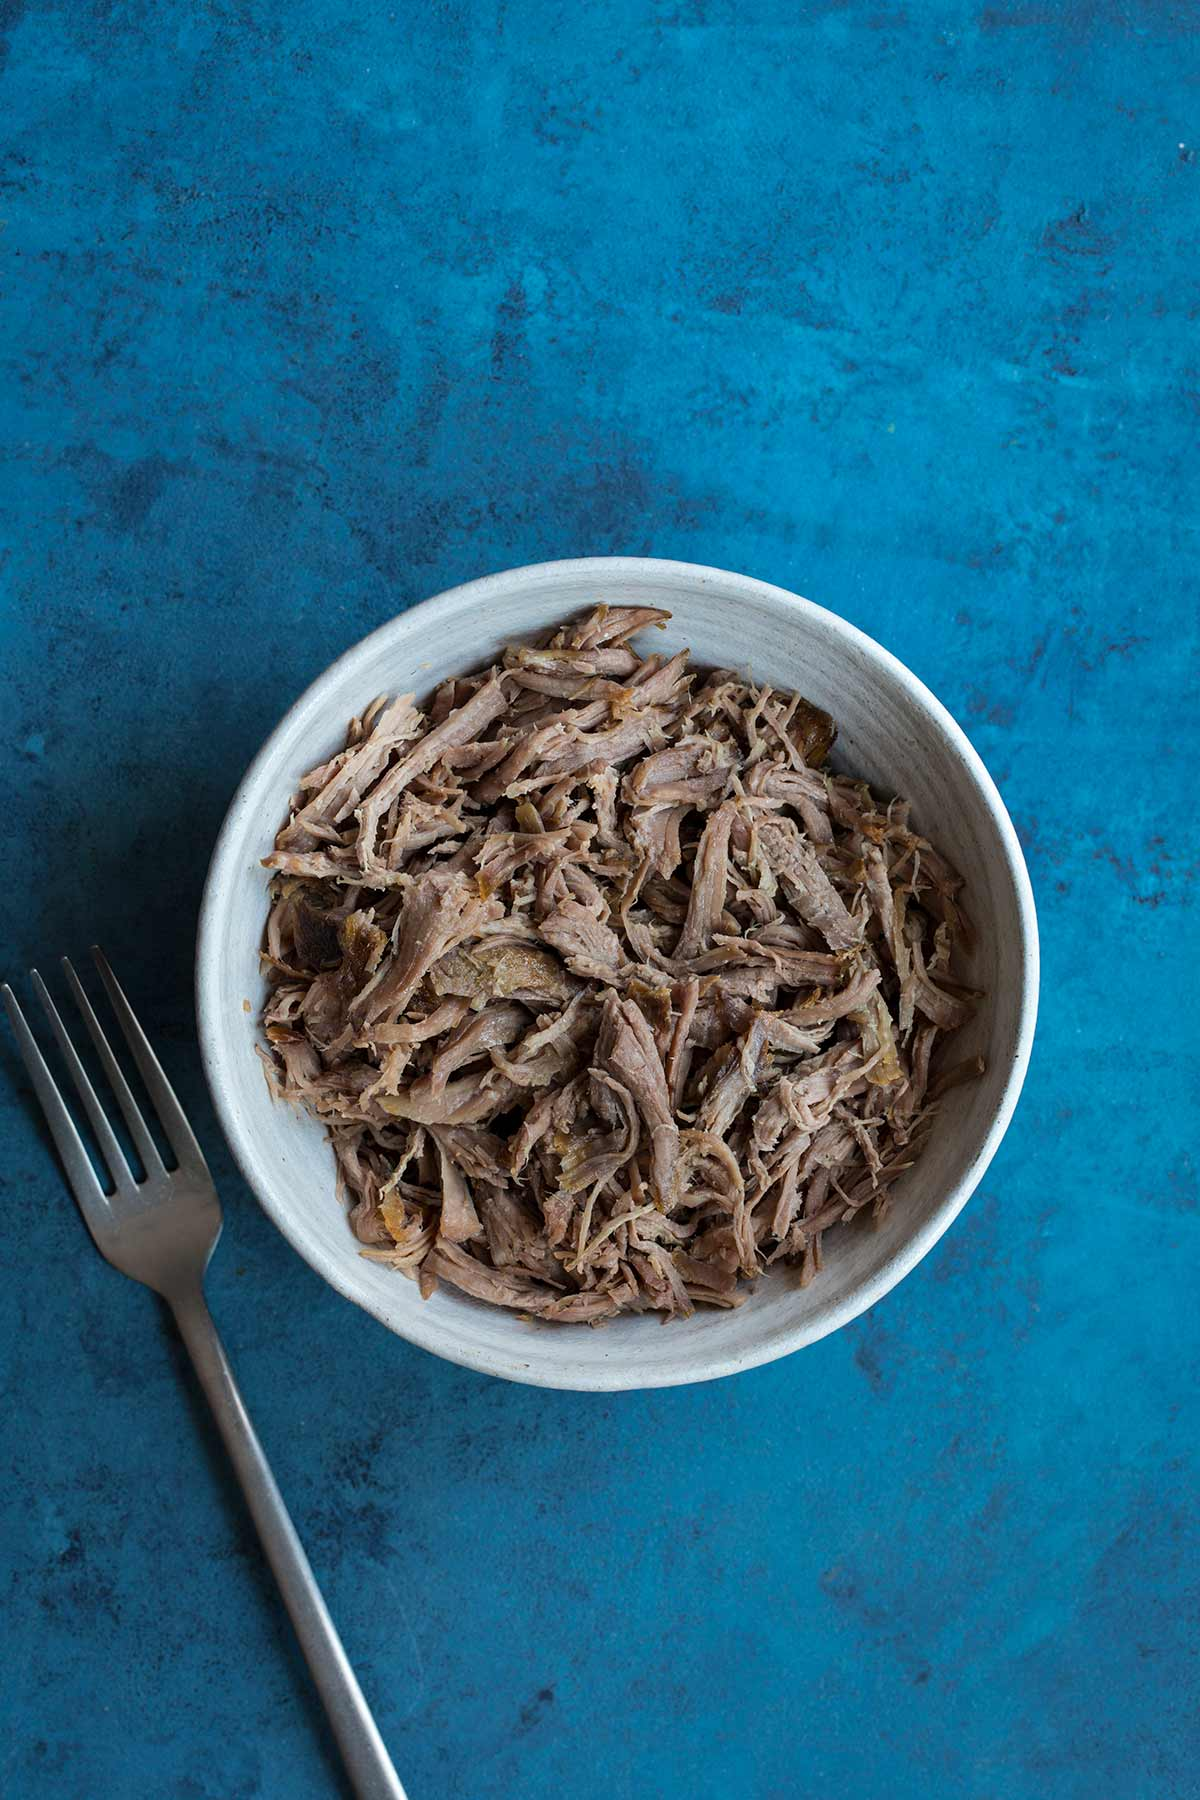 Slow cooker kalua pig in a bowl with a fork on a blue backdrop